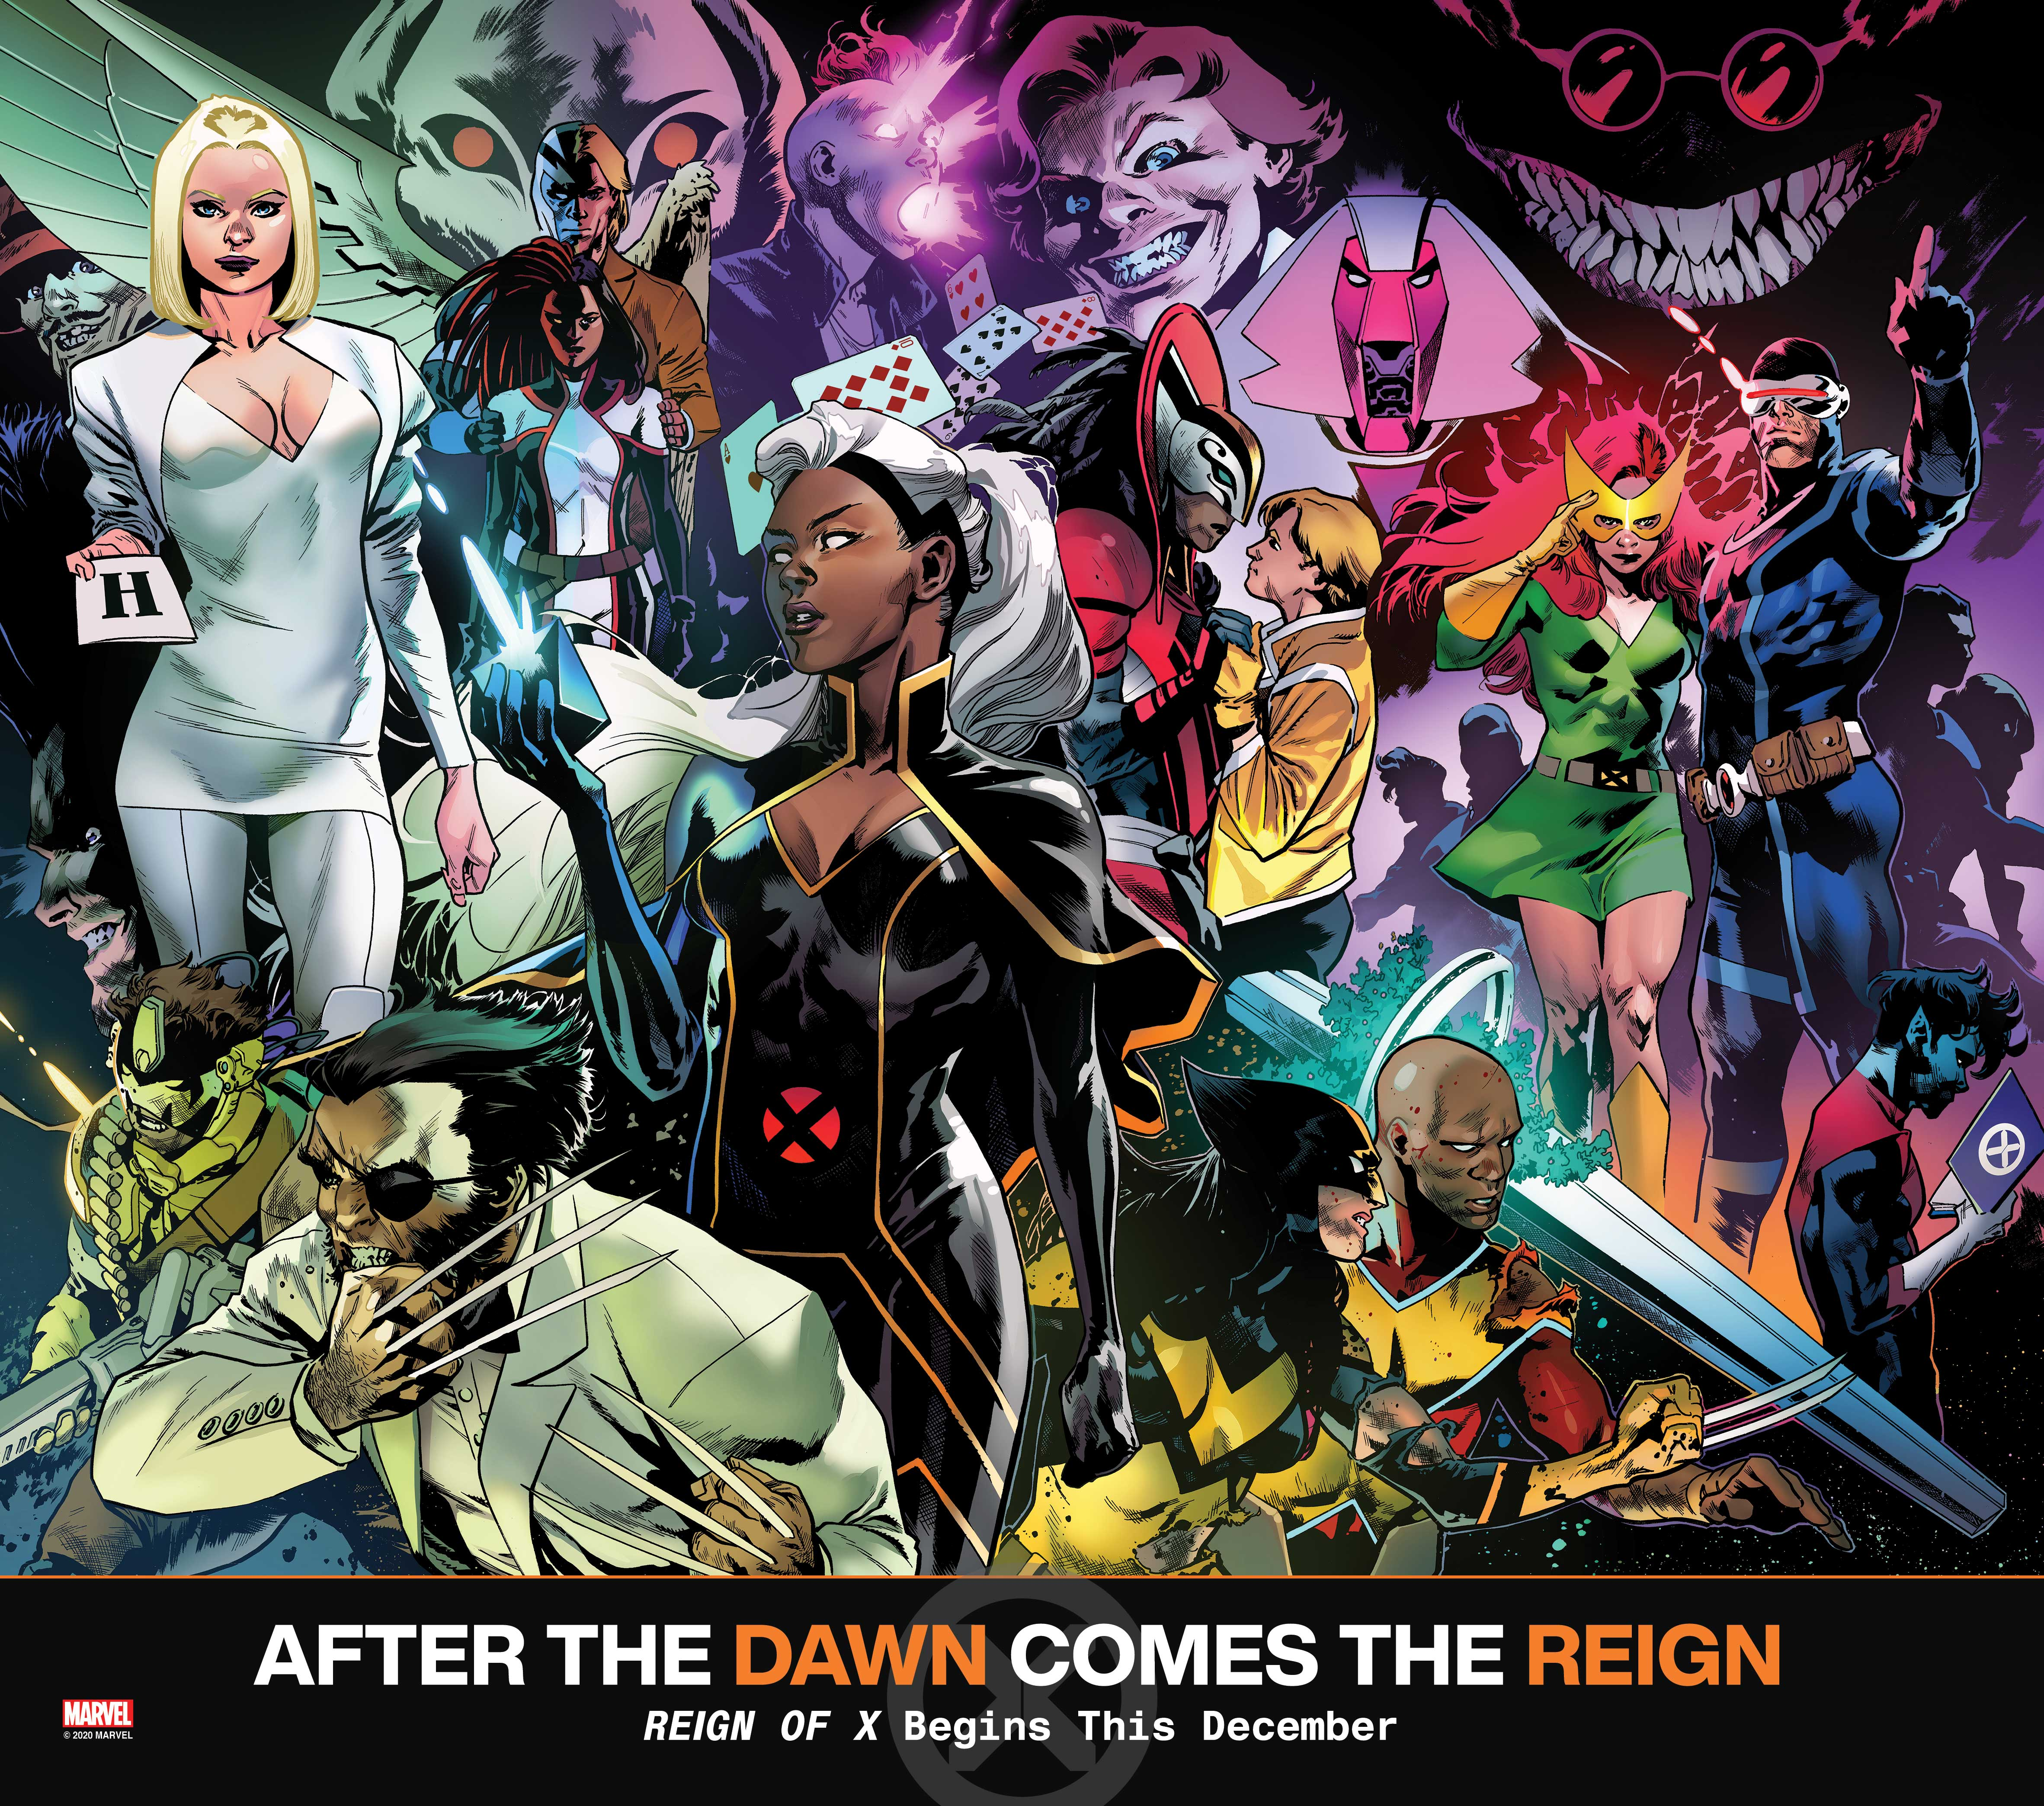 A Marvel promotional collage of dozens of X-Men heroes and villains, from Storm and Mr. Patch to Nimrod and Cyclops, for Reign of X (2020).